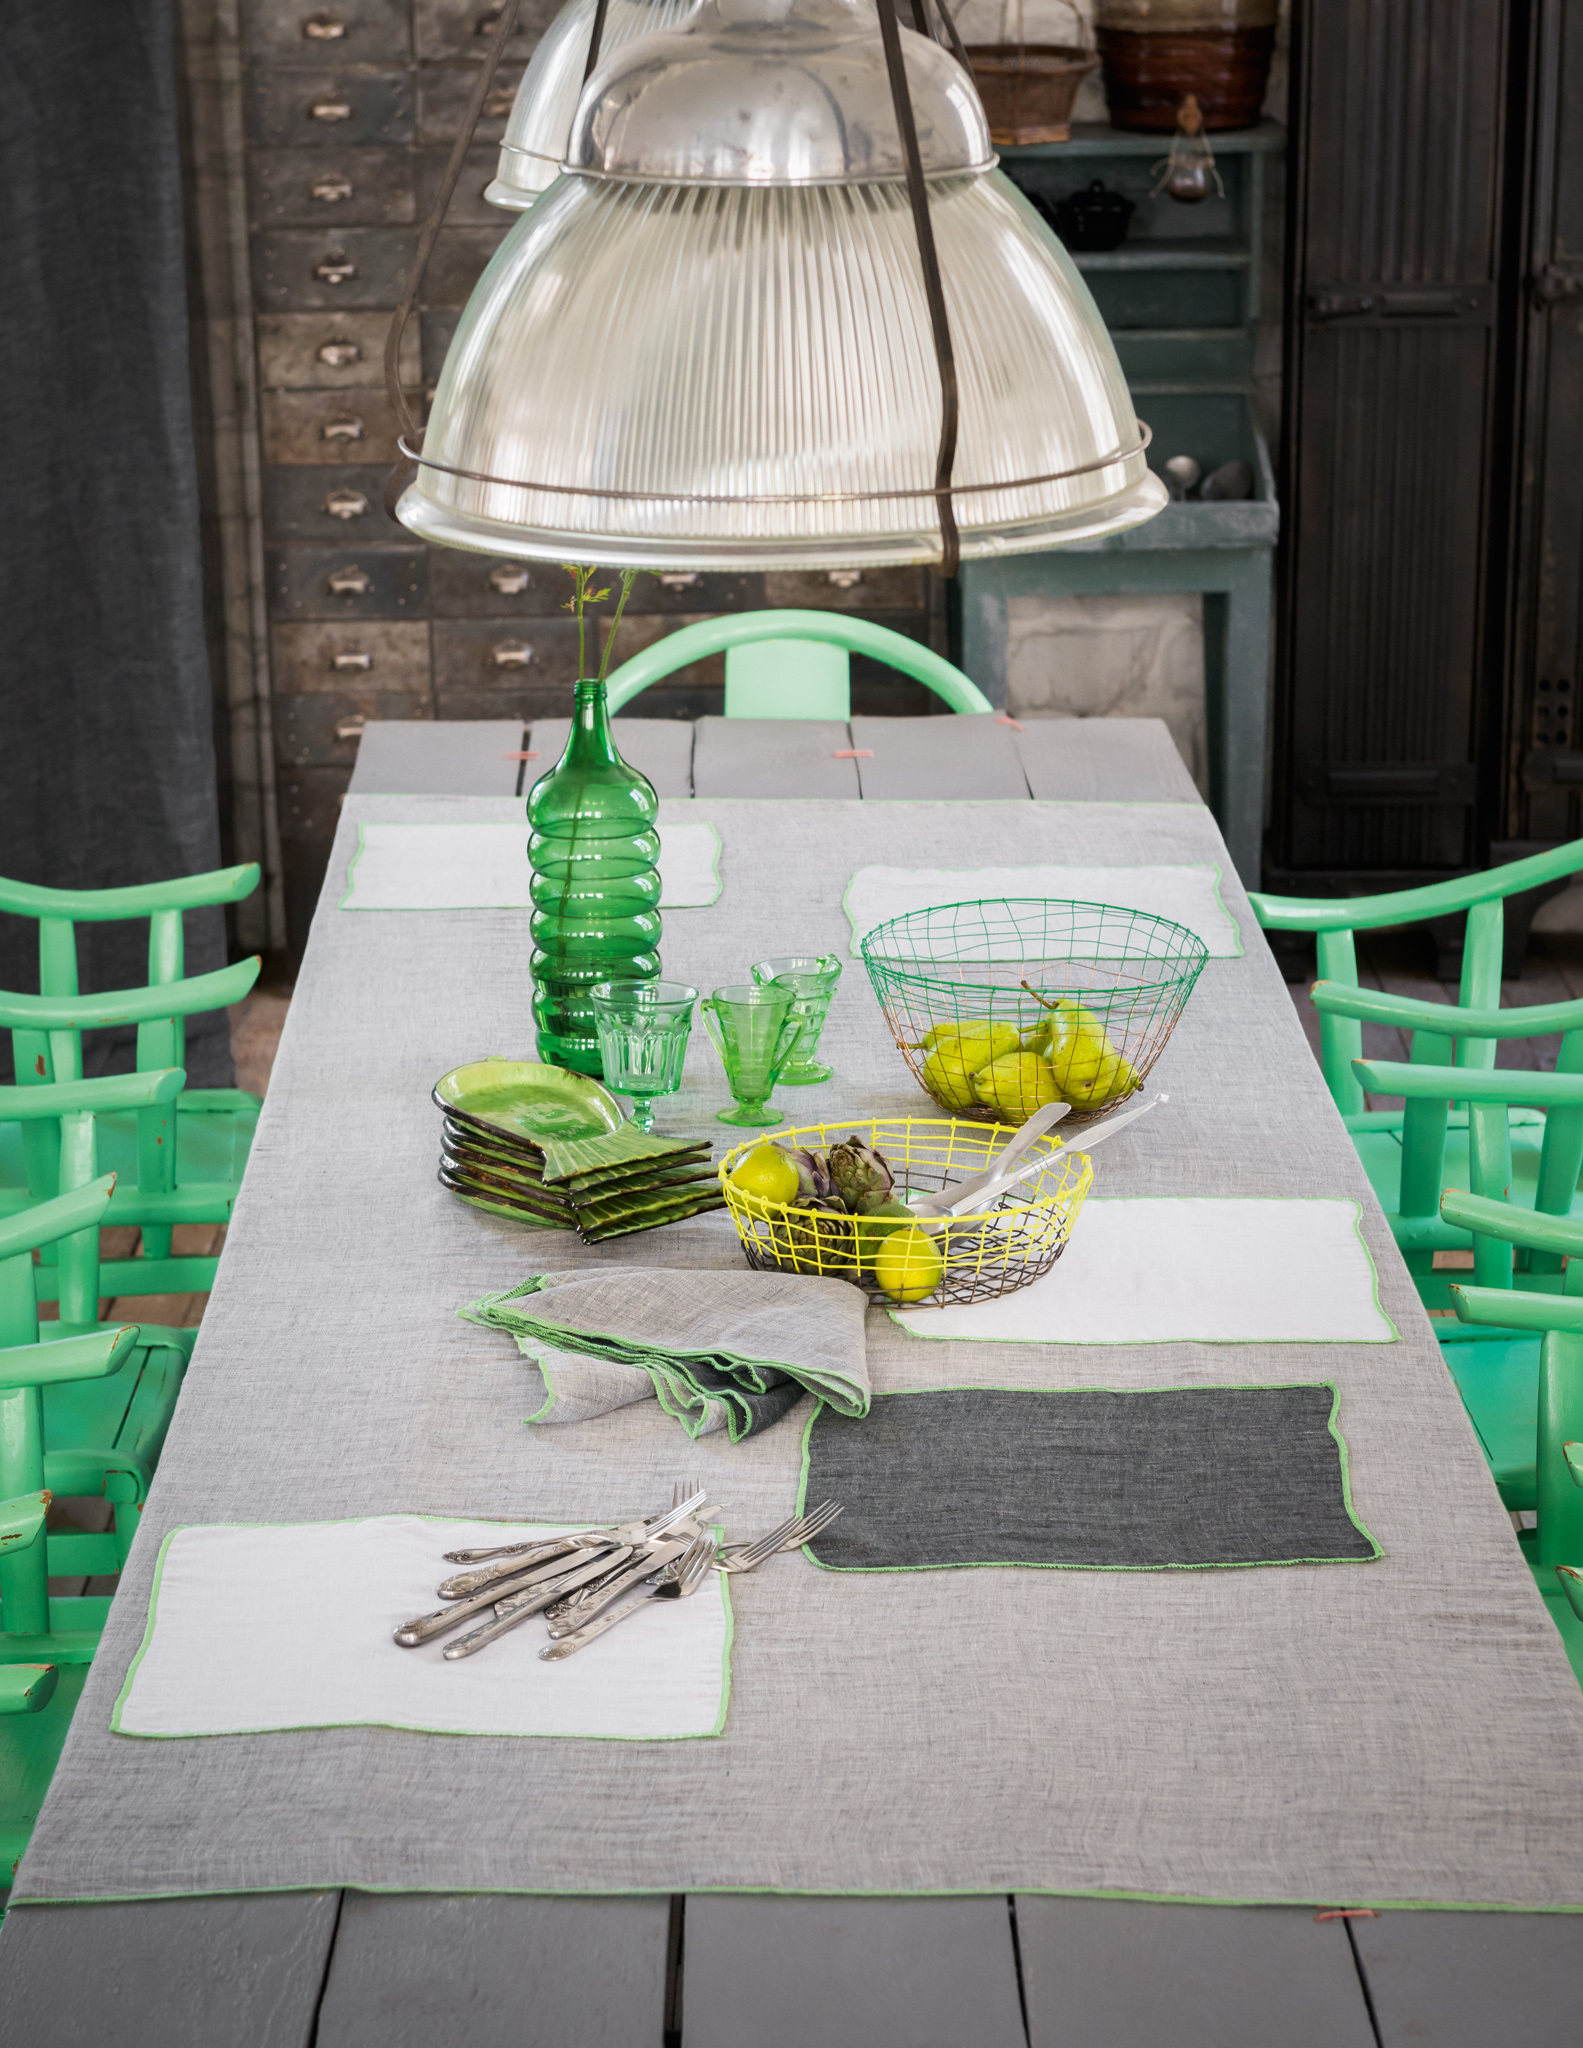 Catalogue Dominique Kieffer 2015-2016 - Loft de Paola Navone à Paris